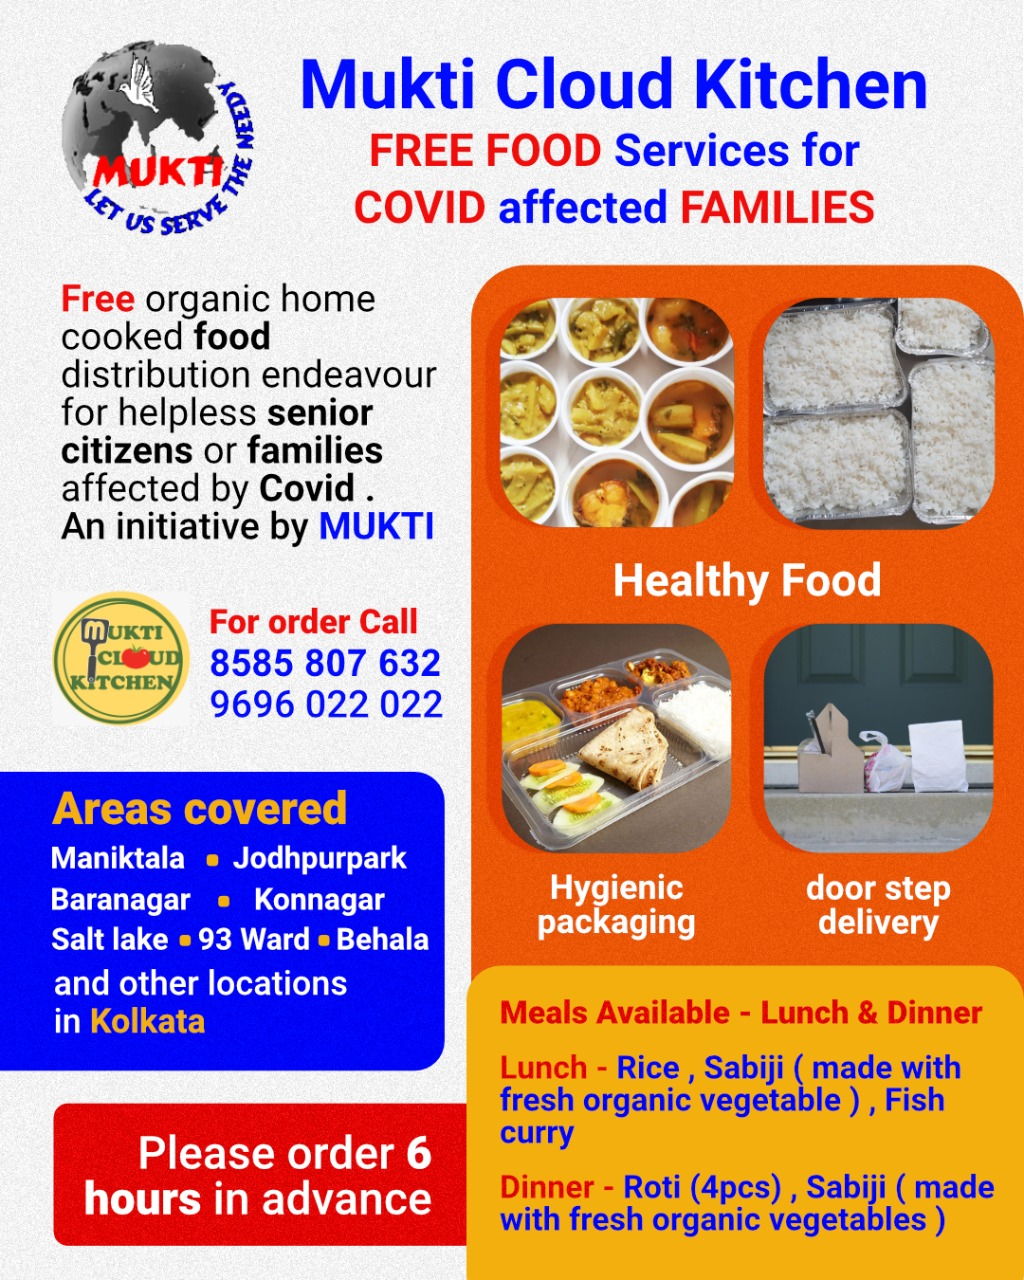 Mukti Cloud Kitchen: Free Food Service for Covid Affected Families